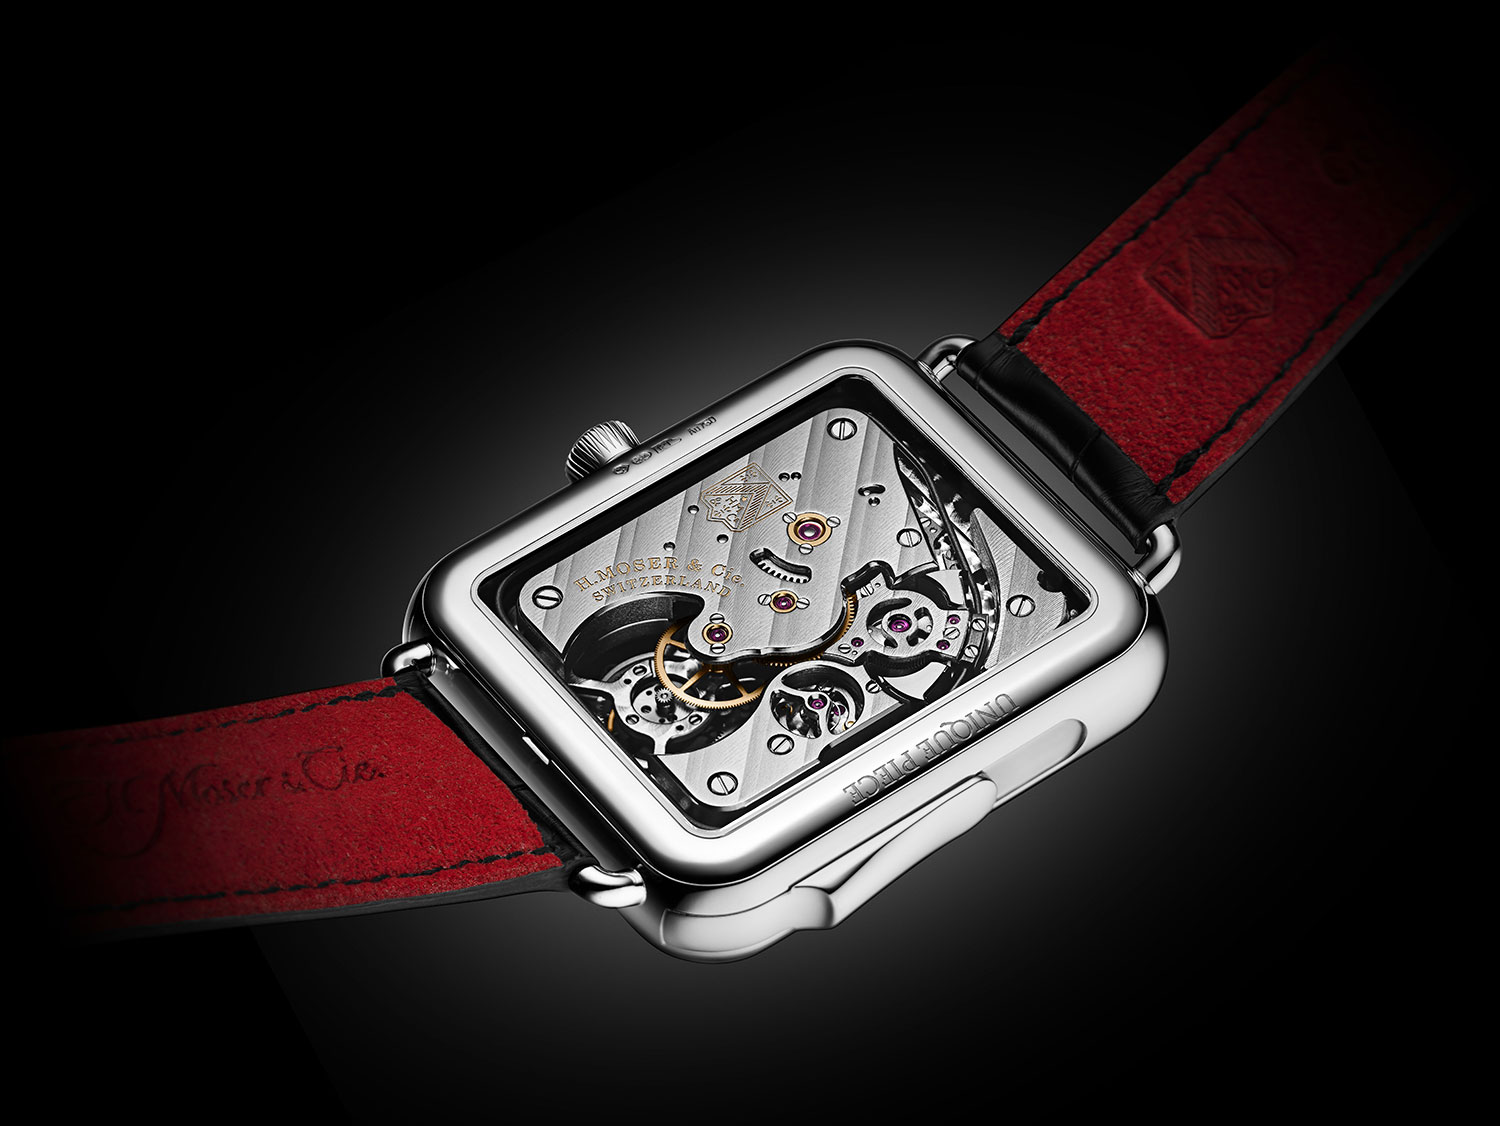 Swiss Alp Watch Concept